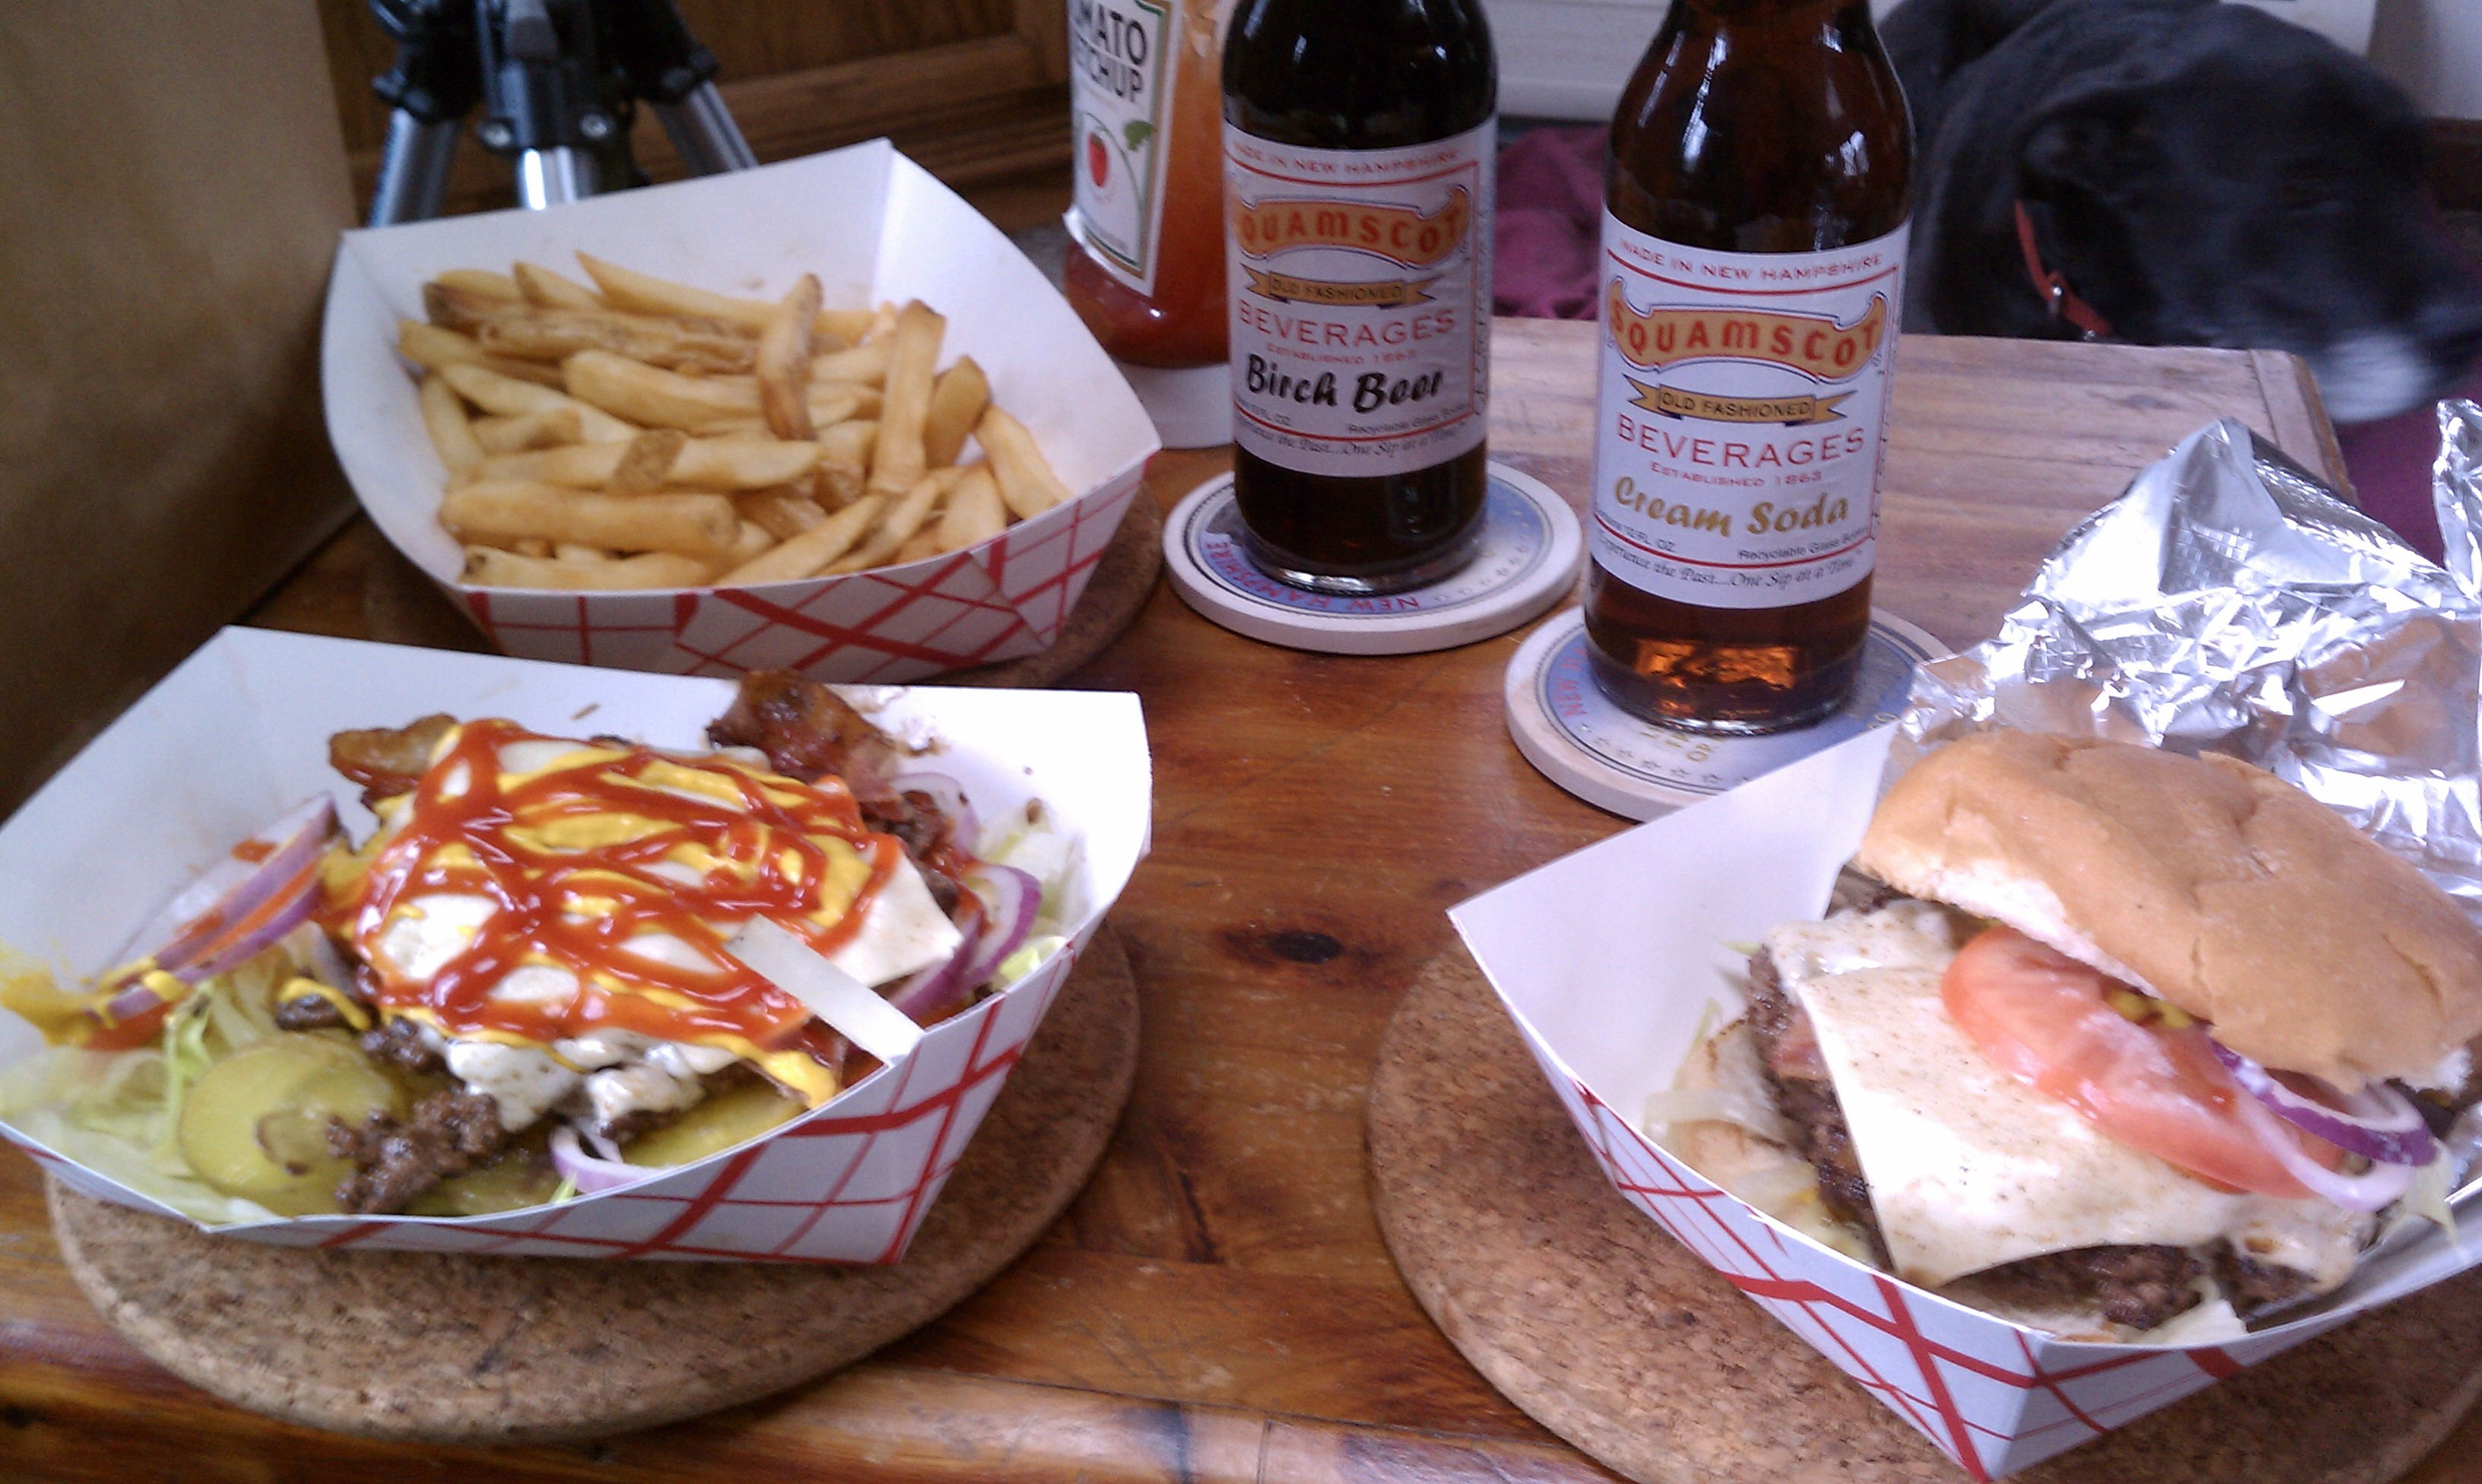 papa joe's humble kitchen Milford NH :: Texas burgers with fries and cream soda and birch beer soda